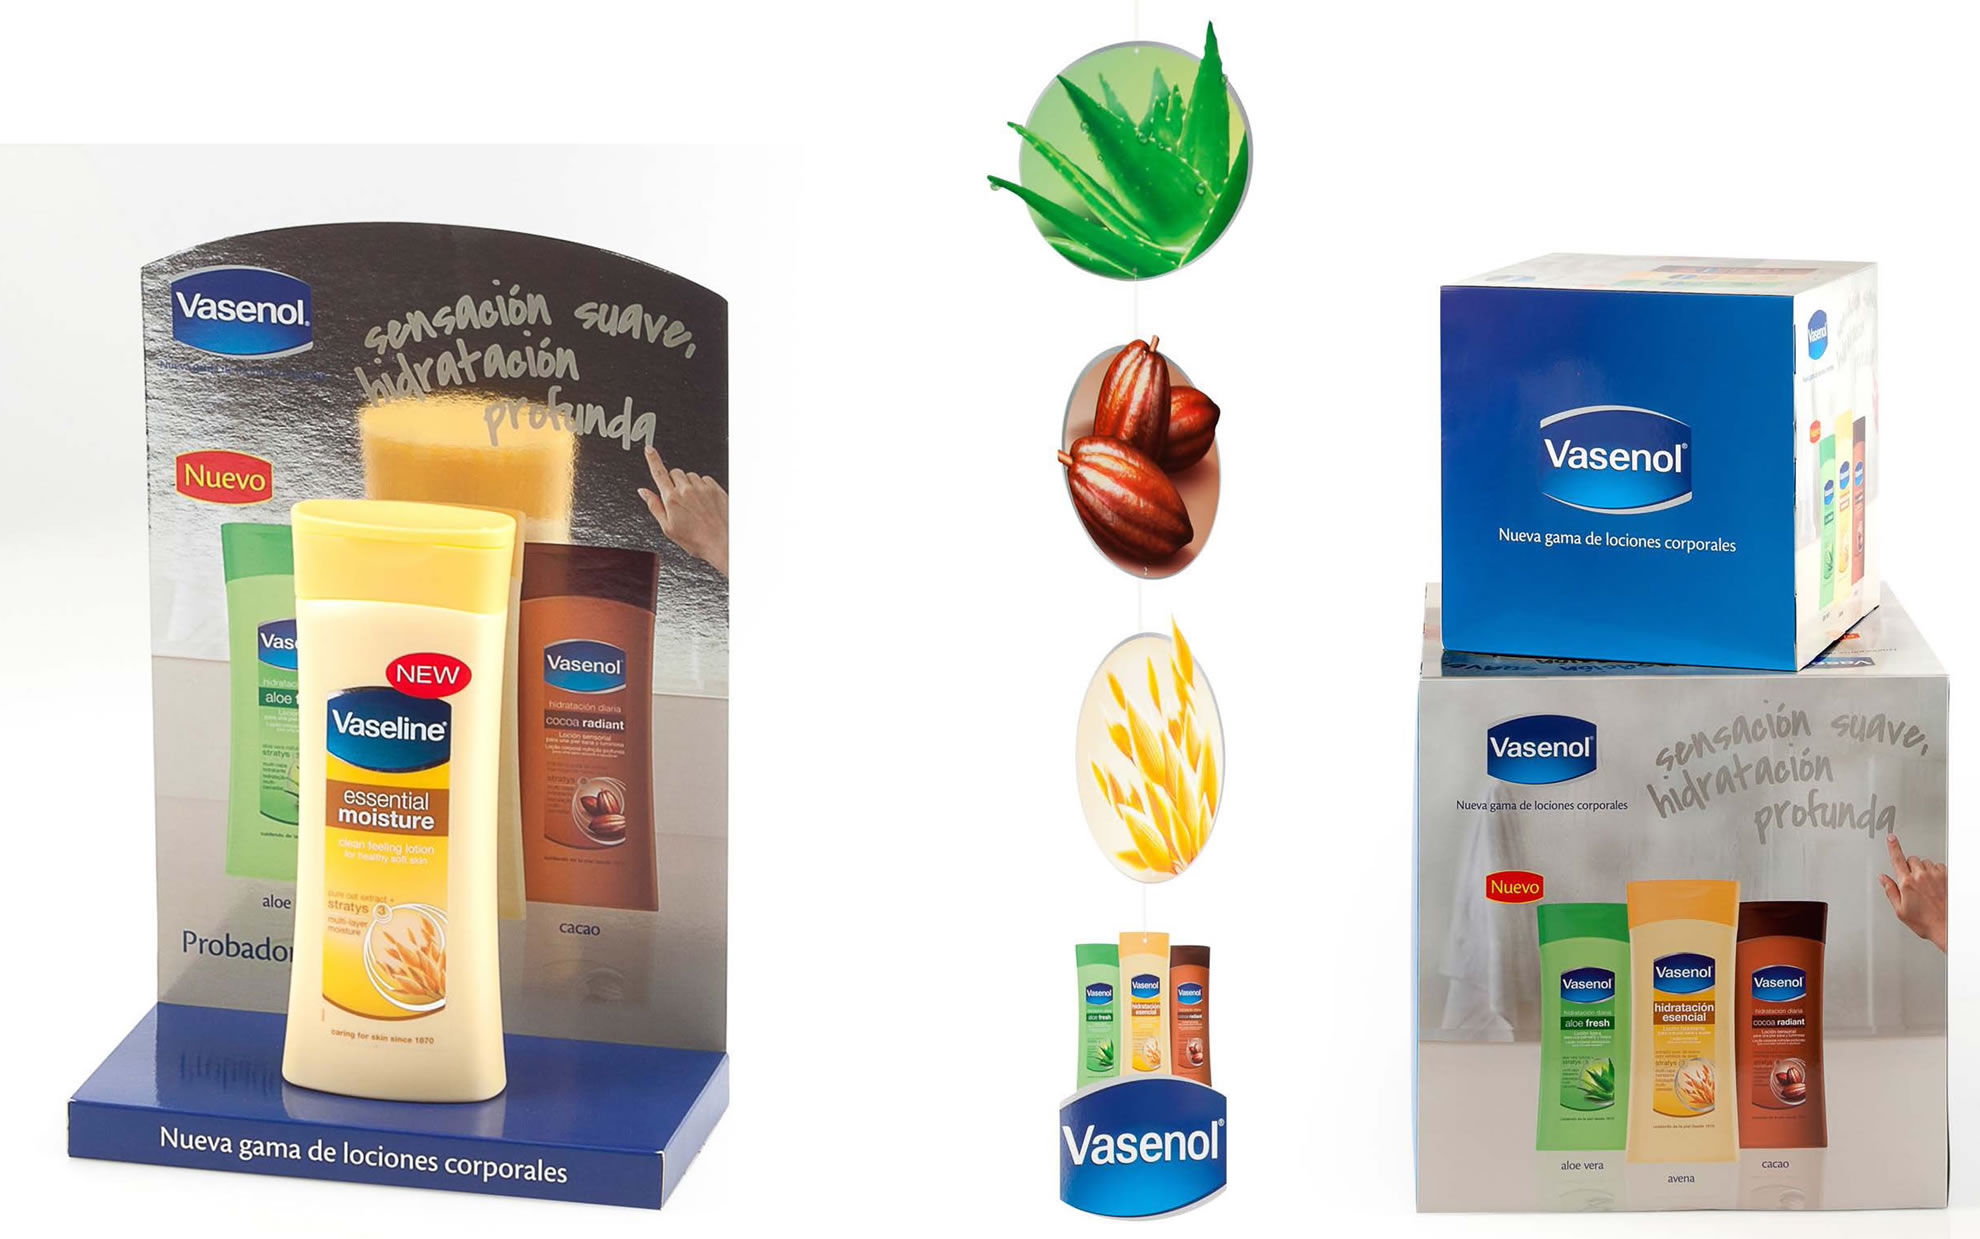 unilever-vasenol-packaging